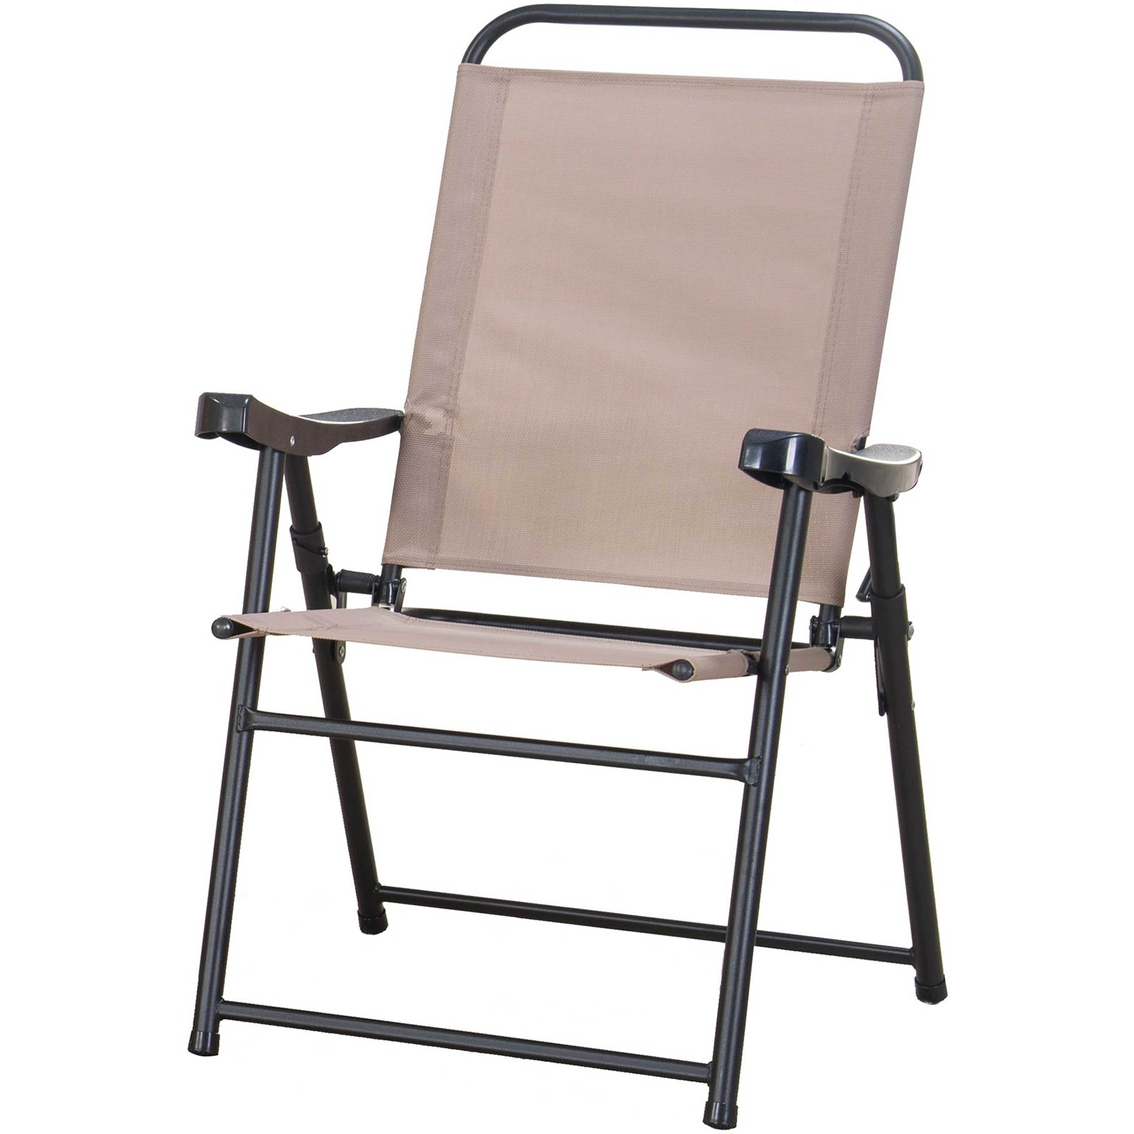 Courtyard Creations Sling Folding Chair Tables Chairs